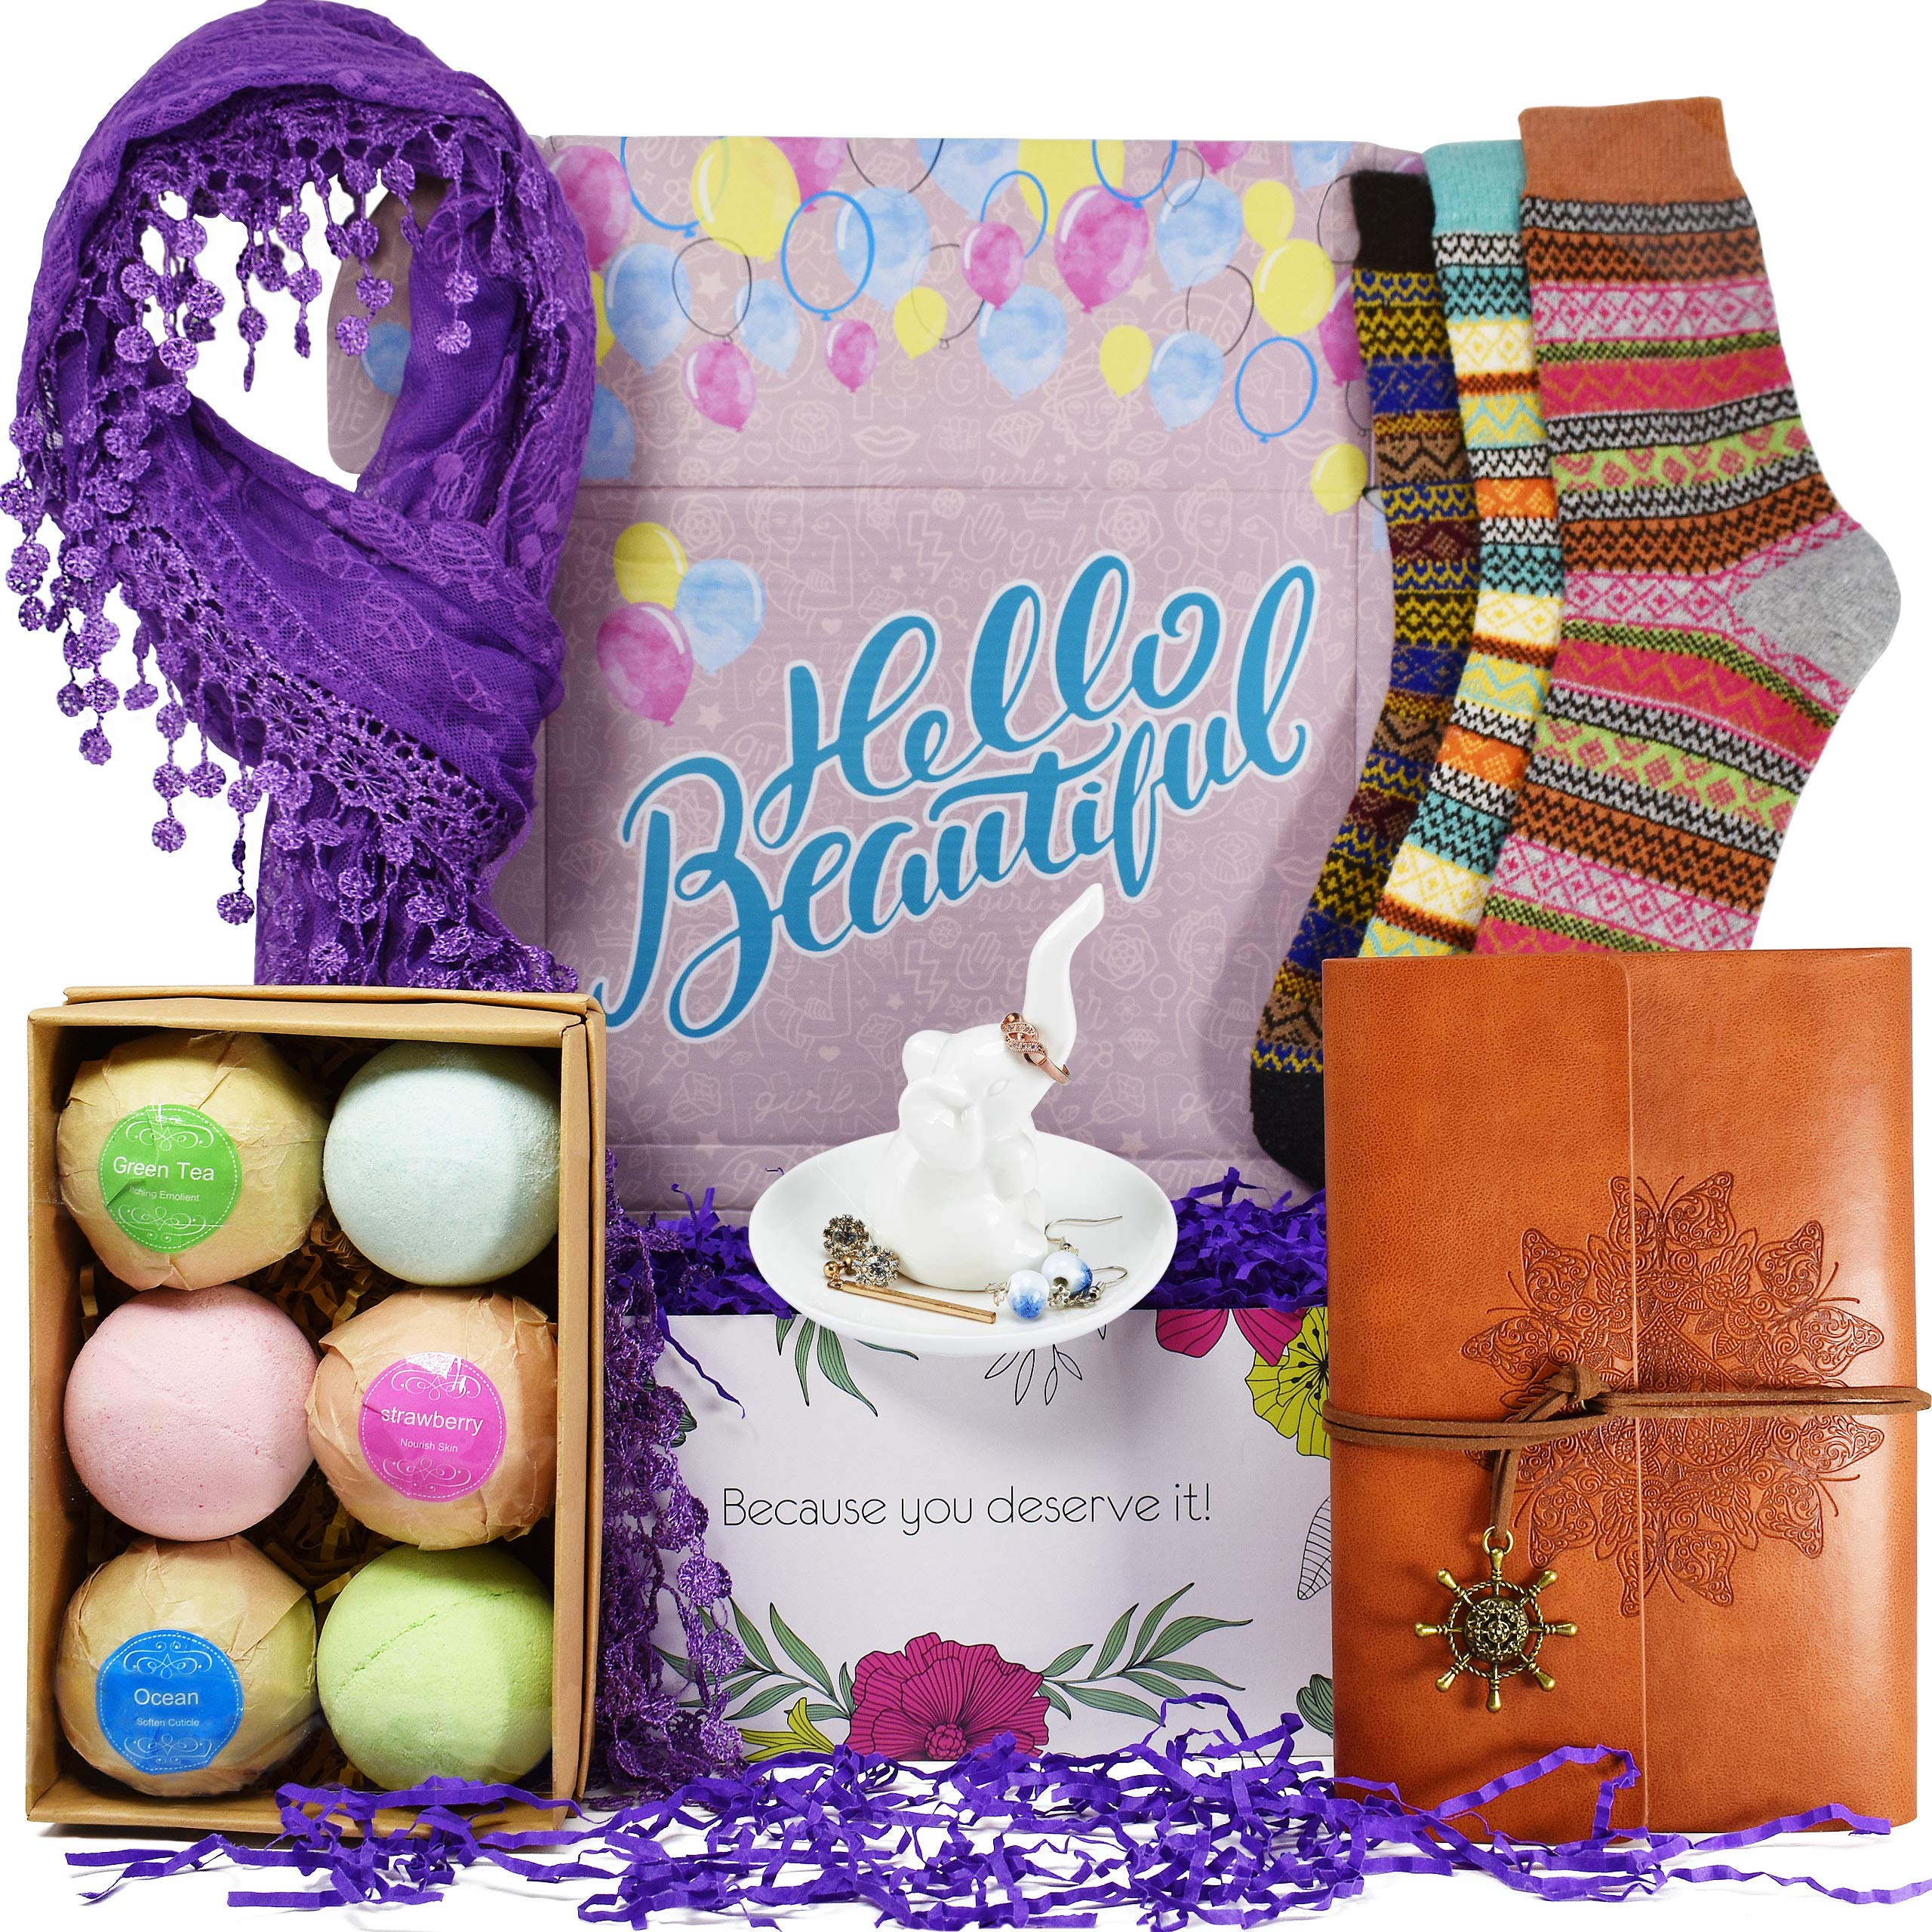 Birthday Gift Baskets for Women - Includes: Journal for Women, Ring Holders for Jewelry, Bubble Bath for Women, Warm Socks, and Womens Scarves for Wife, Friend Aunt, Sister or Daughter